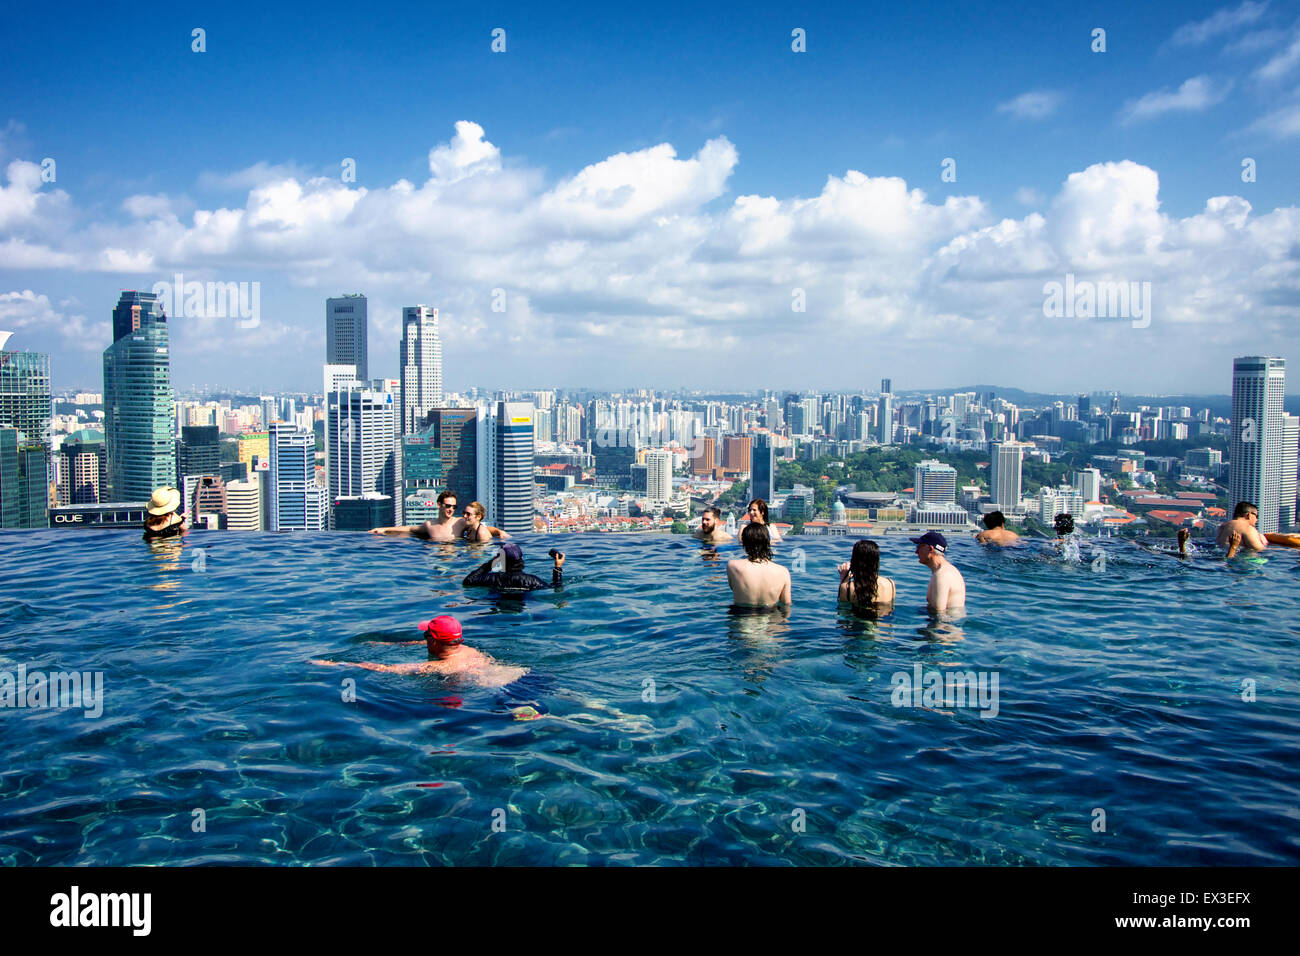 Chilling at the MBS Infinity pool and enjoying the city skyline